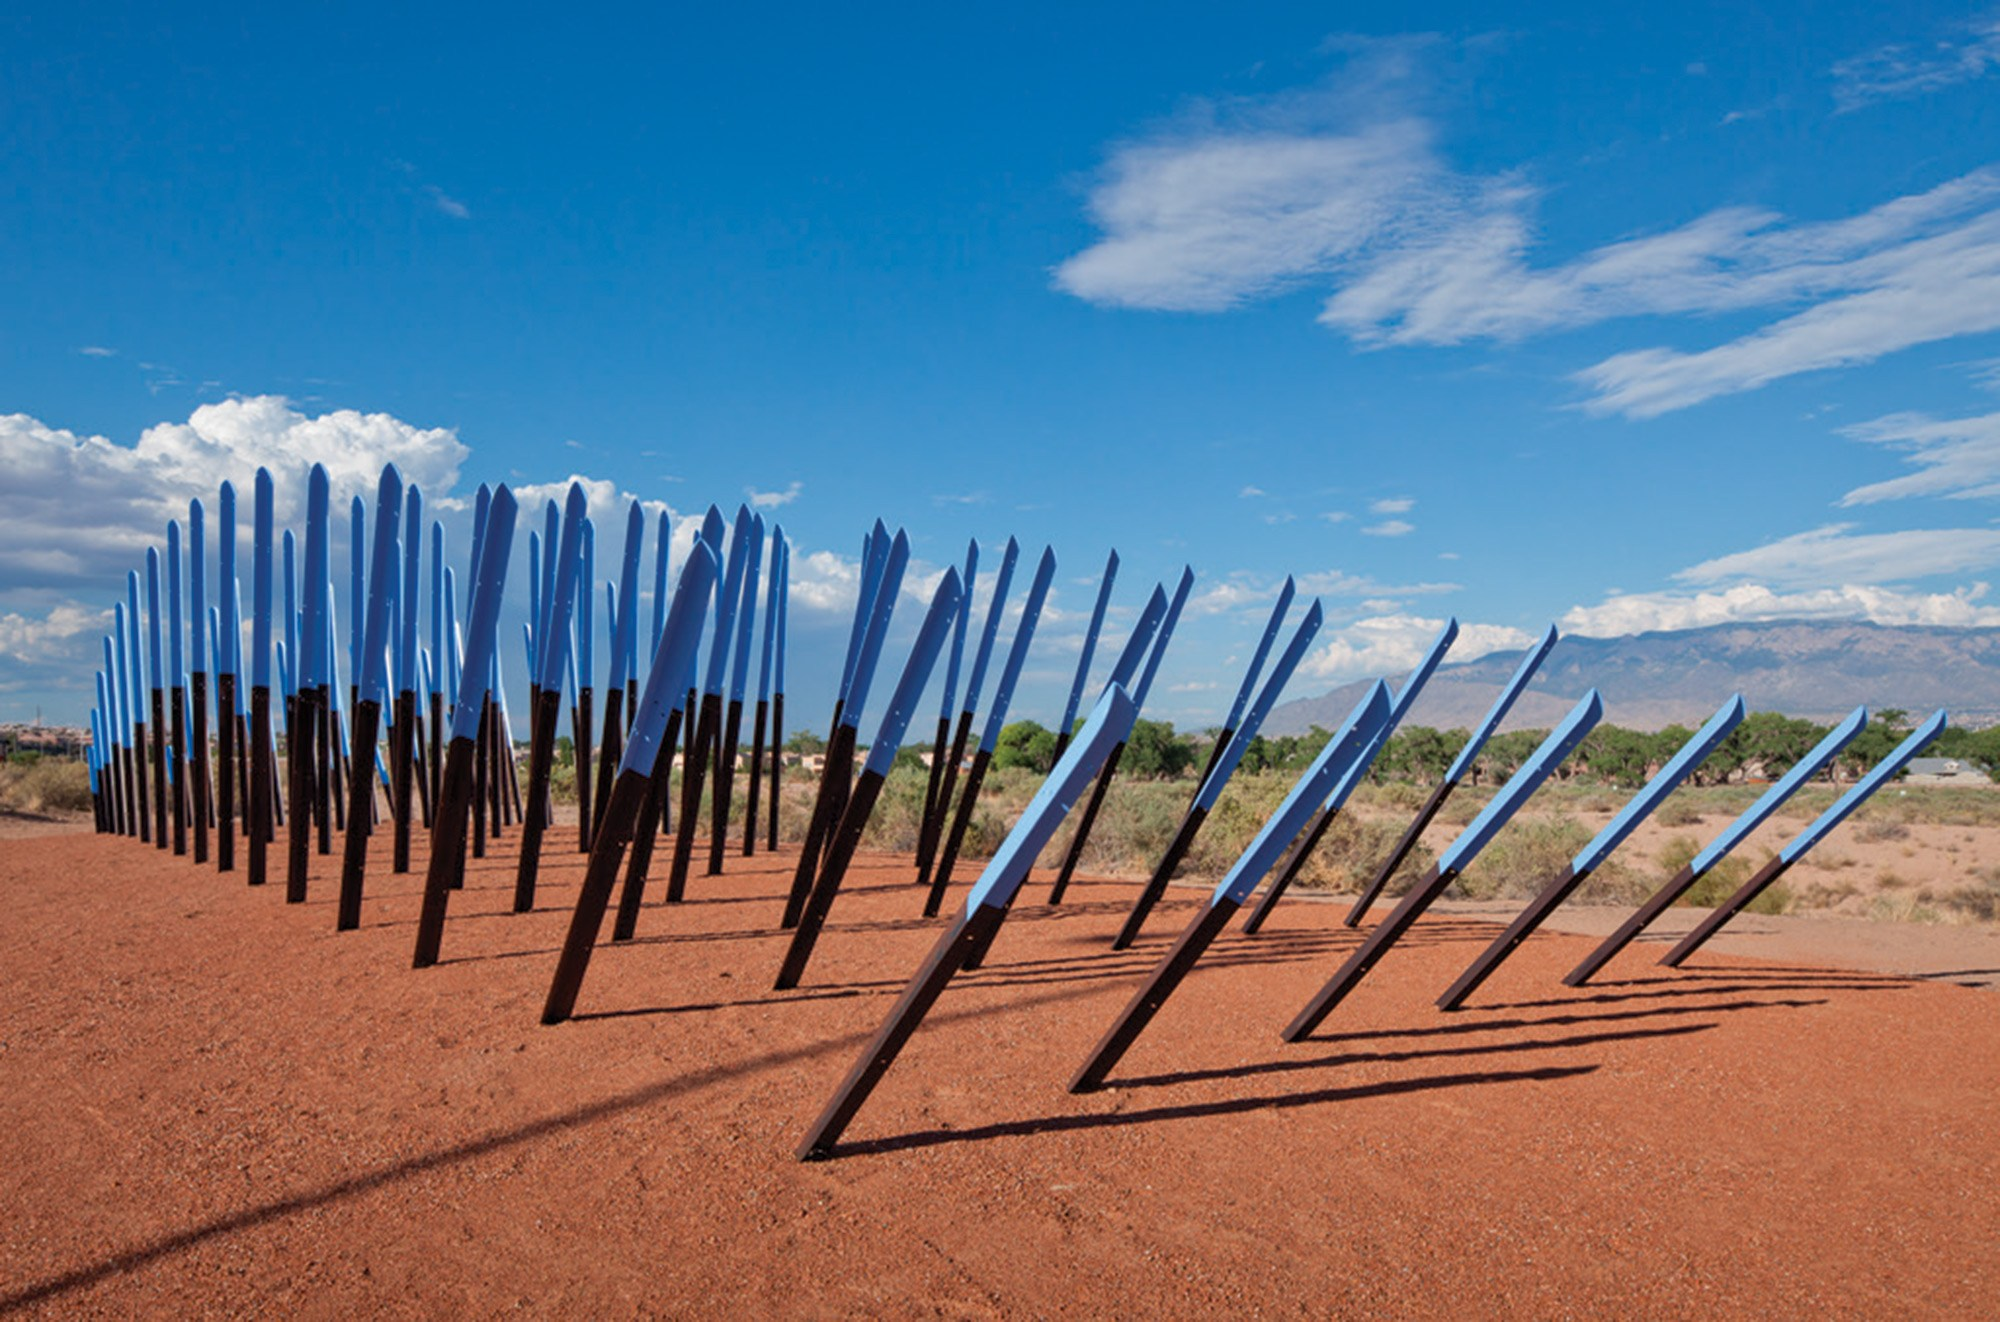 "ROBERT WILSON'S ""FLYWAY"" IS SITUATED AT THE ENTRANCE OF THE OPEN SPACE VISITOR CENTER IN ALBUQUERQUE, NEW MEXICO. IT'S MADE OF REPURPOSED STEEL BEAMS AND WAS INSPIRED BY VISUAL FORMS OF SANDHILL CRANES."